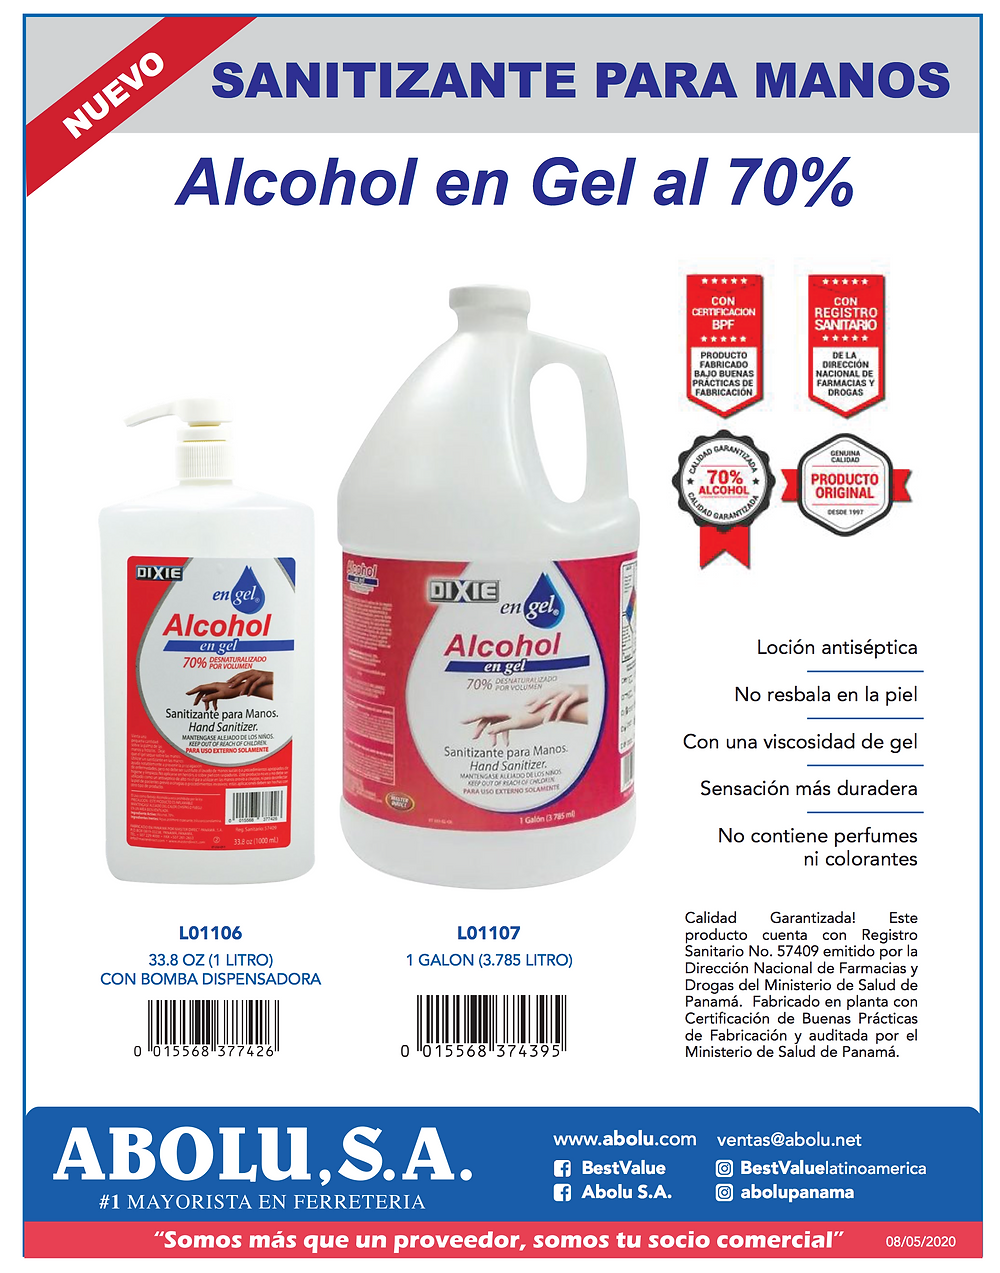 Sanitizante de alcohol en gel para manos